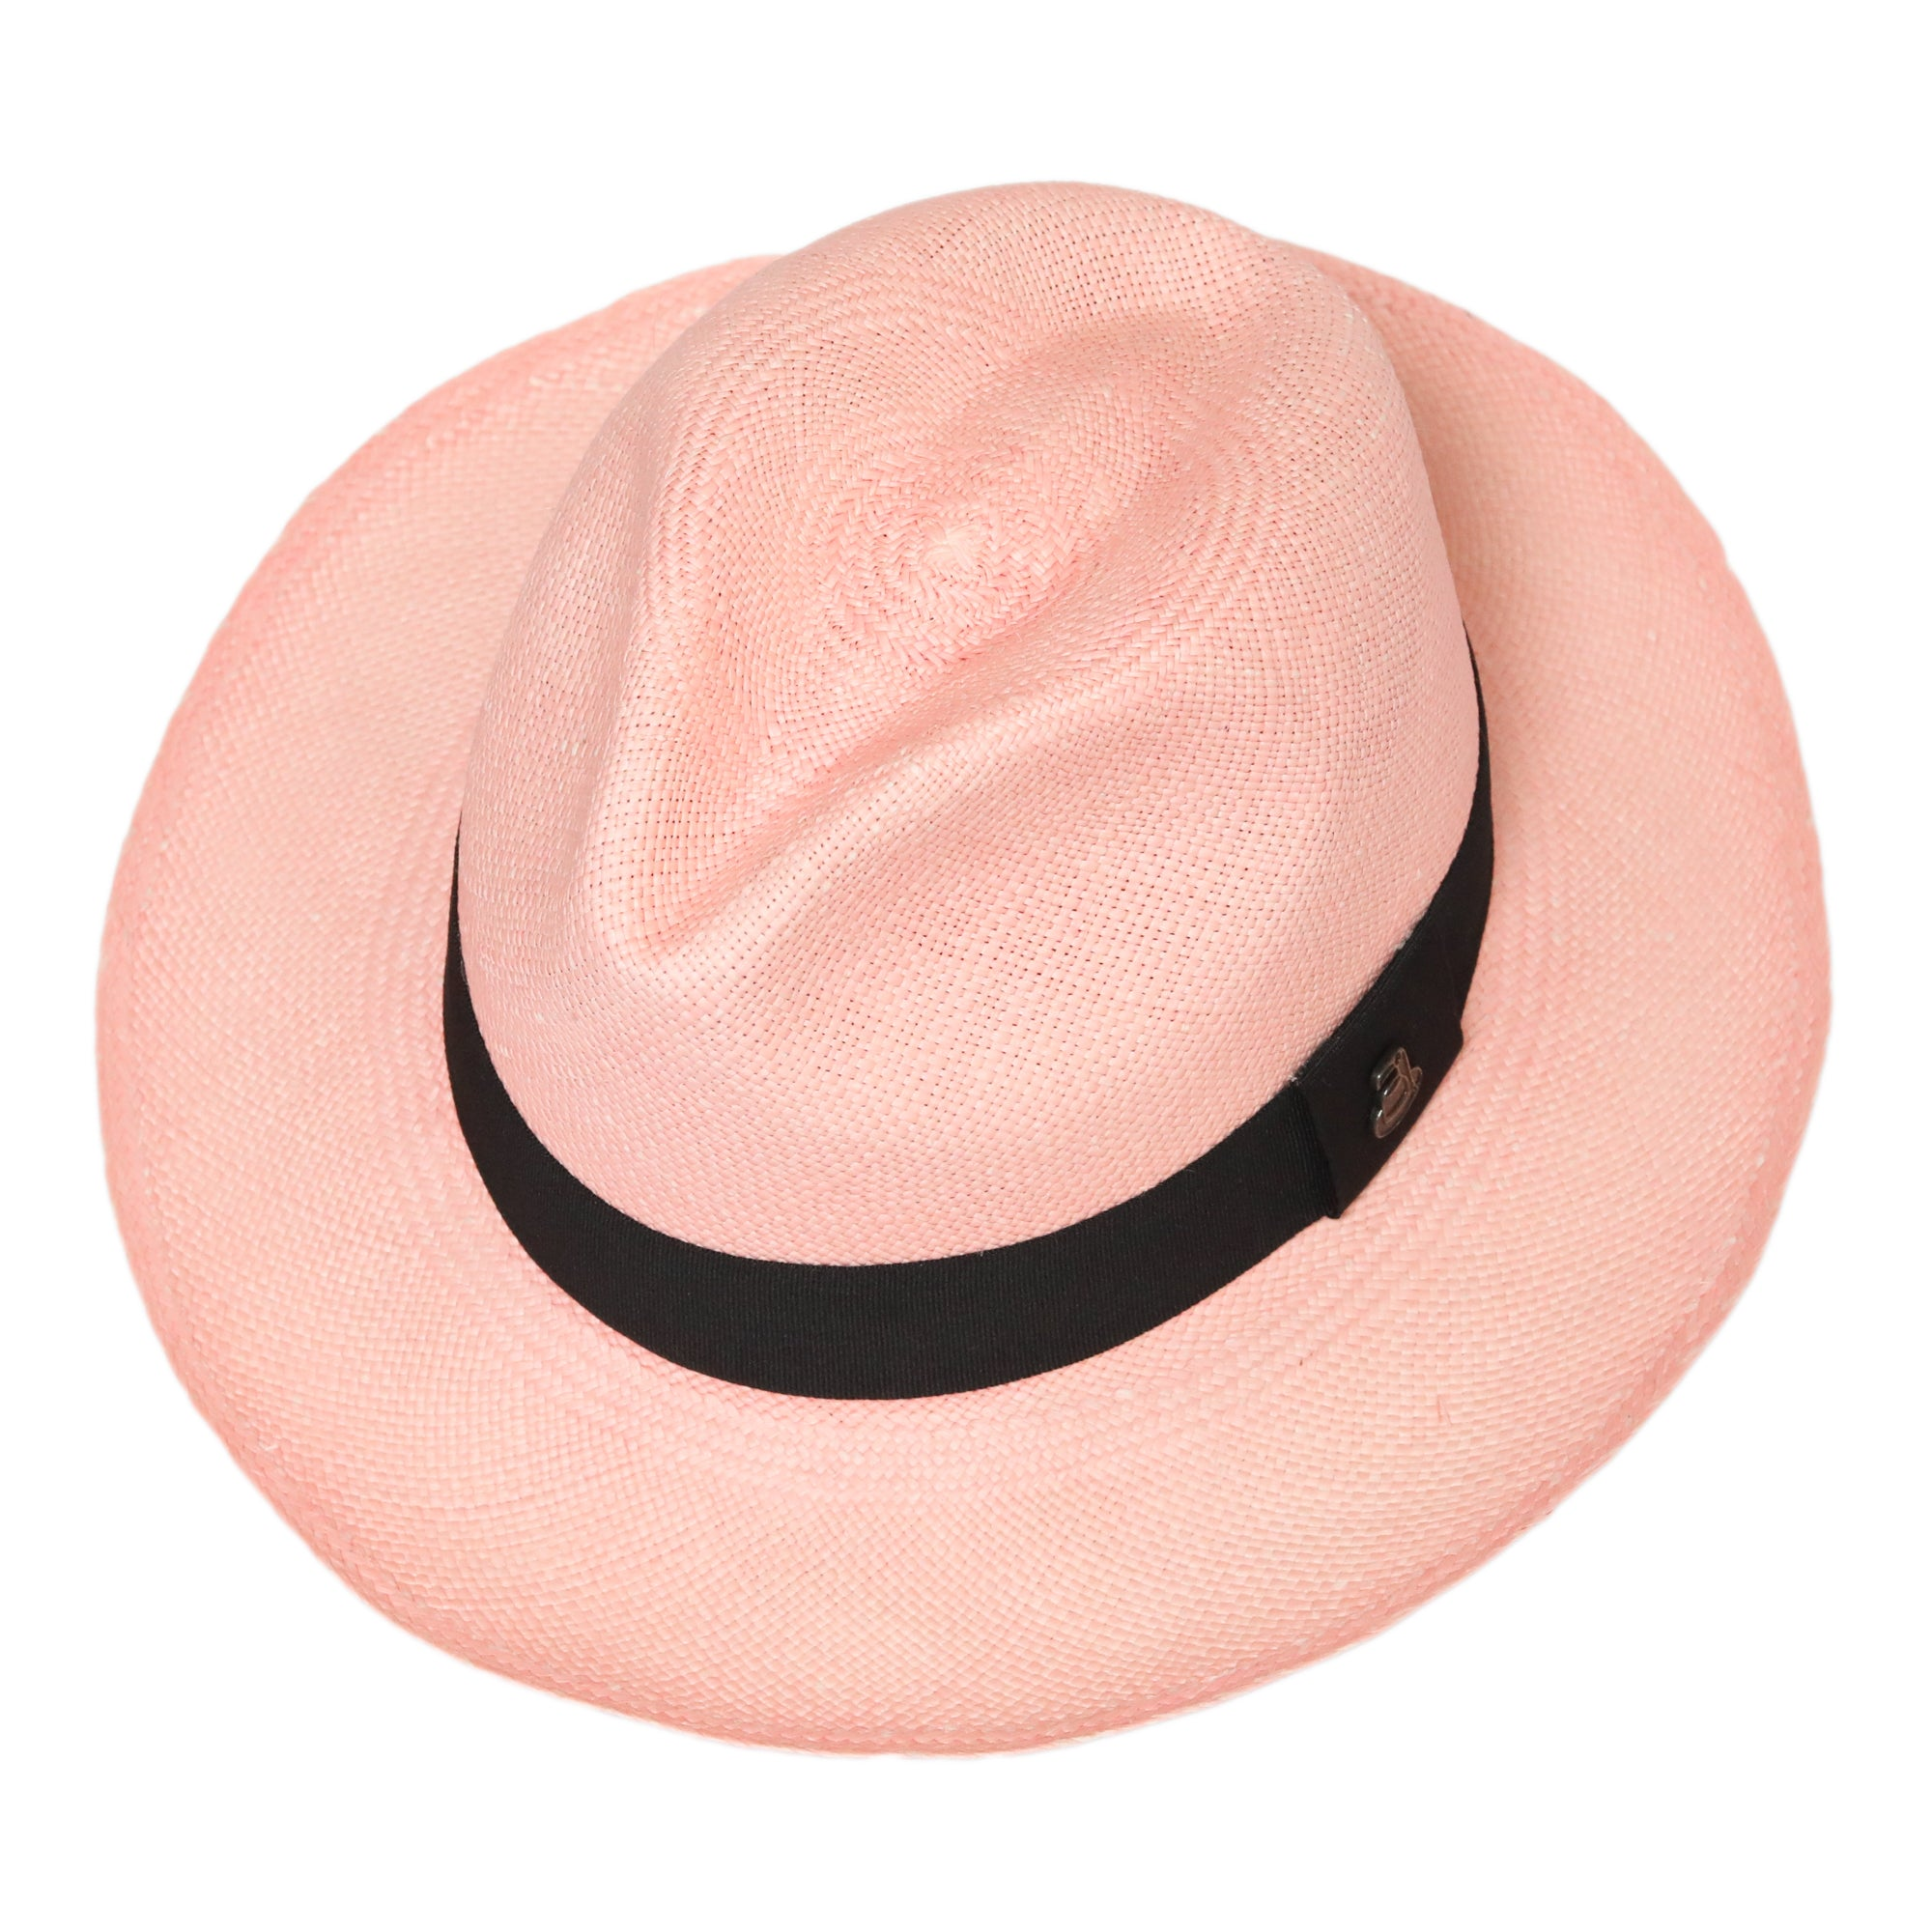 The Classic Pink Panama Hat